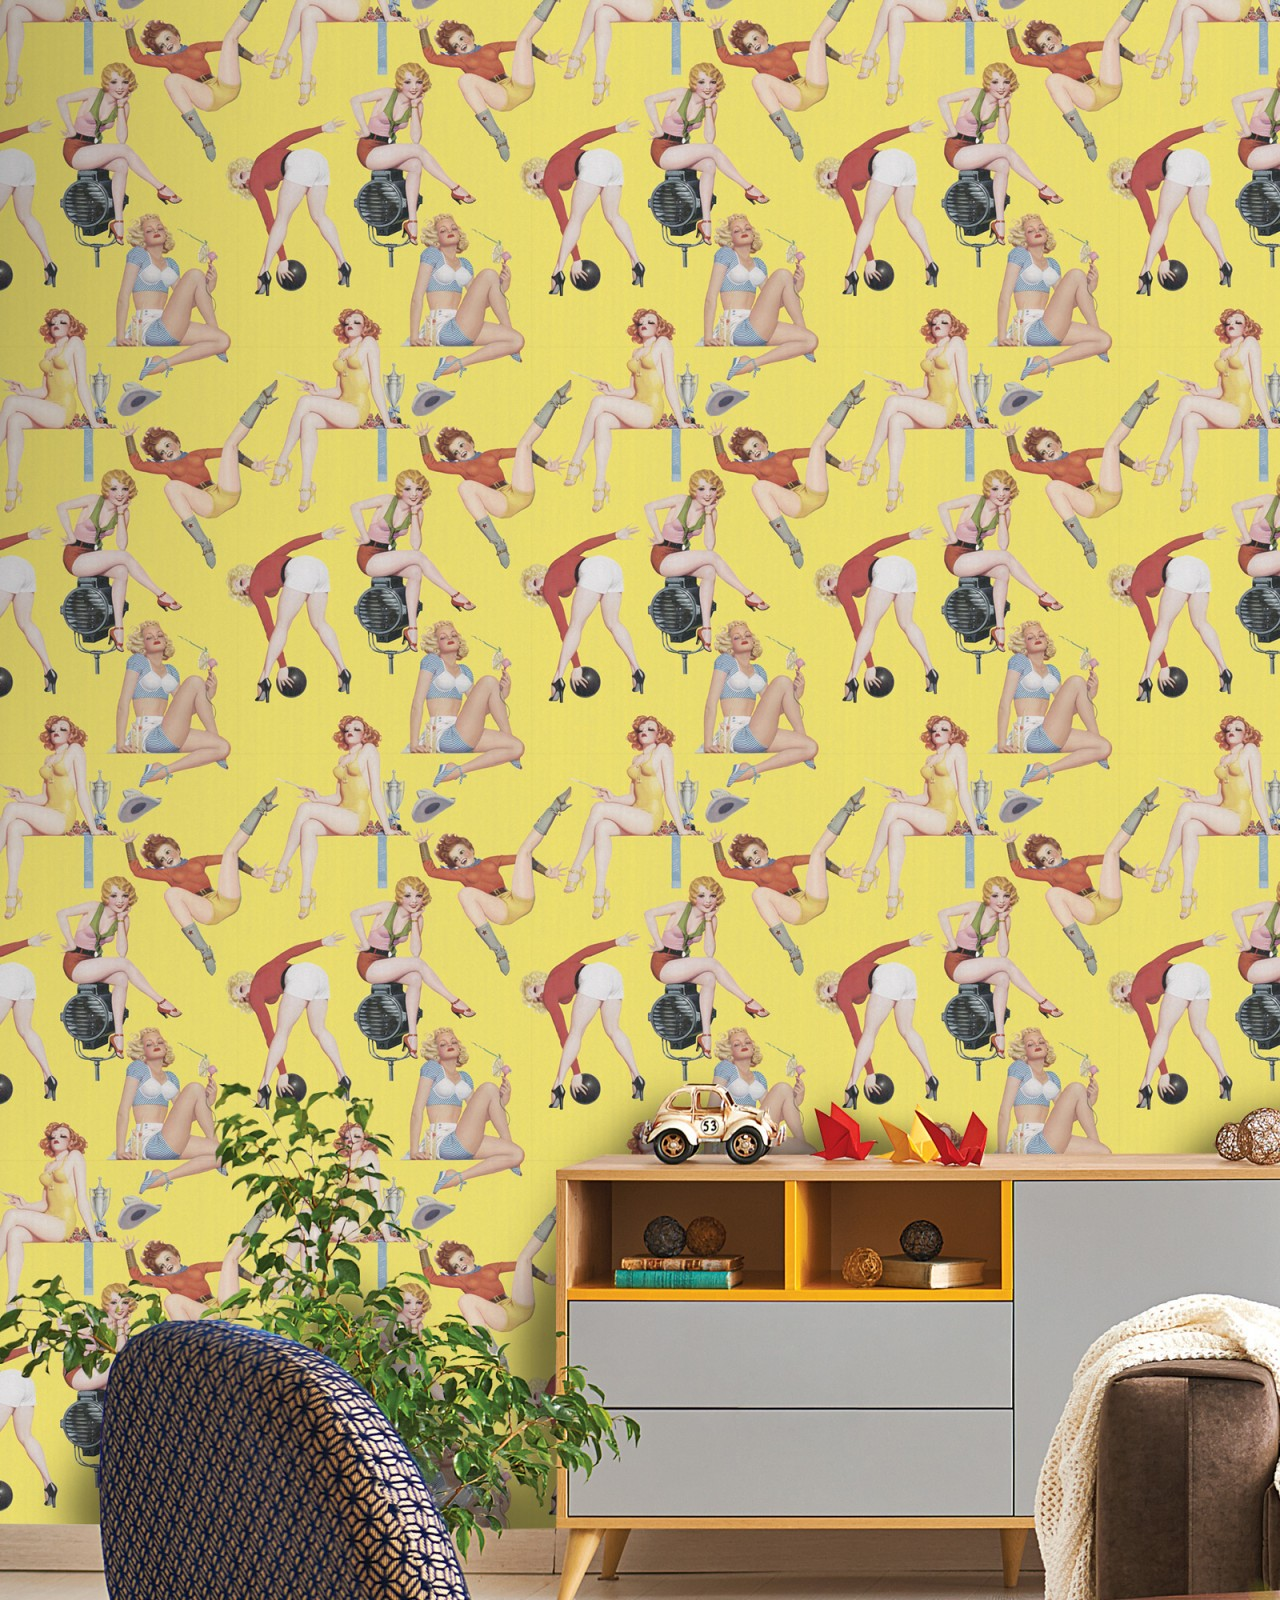 Pin Up Girls Premium Wallpaper Retro Styles Products